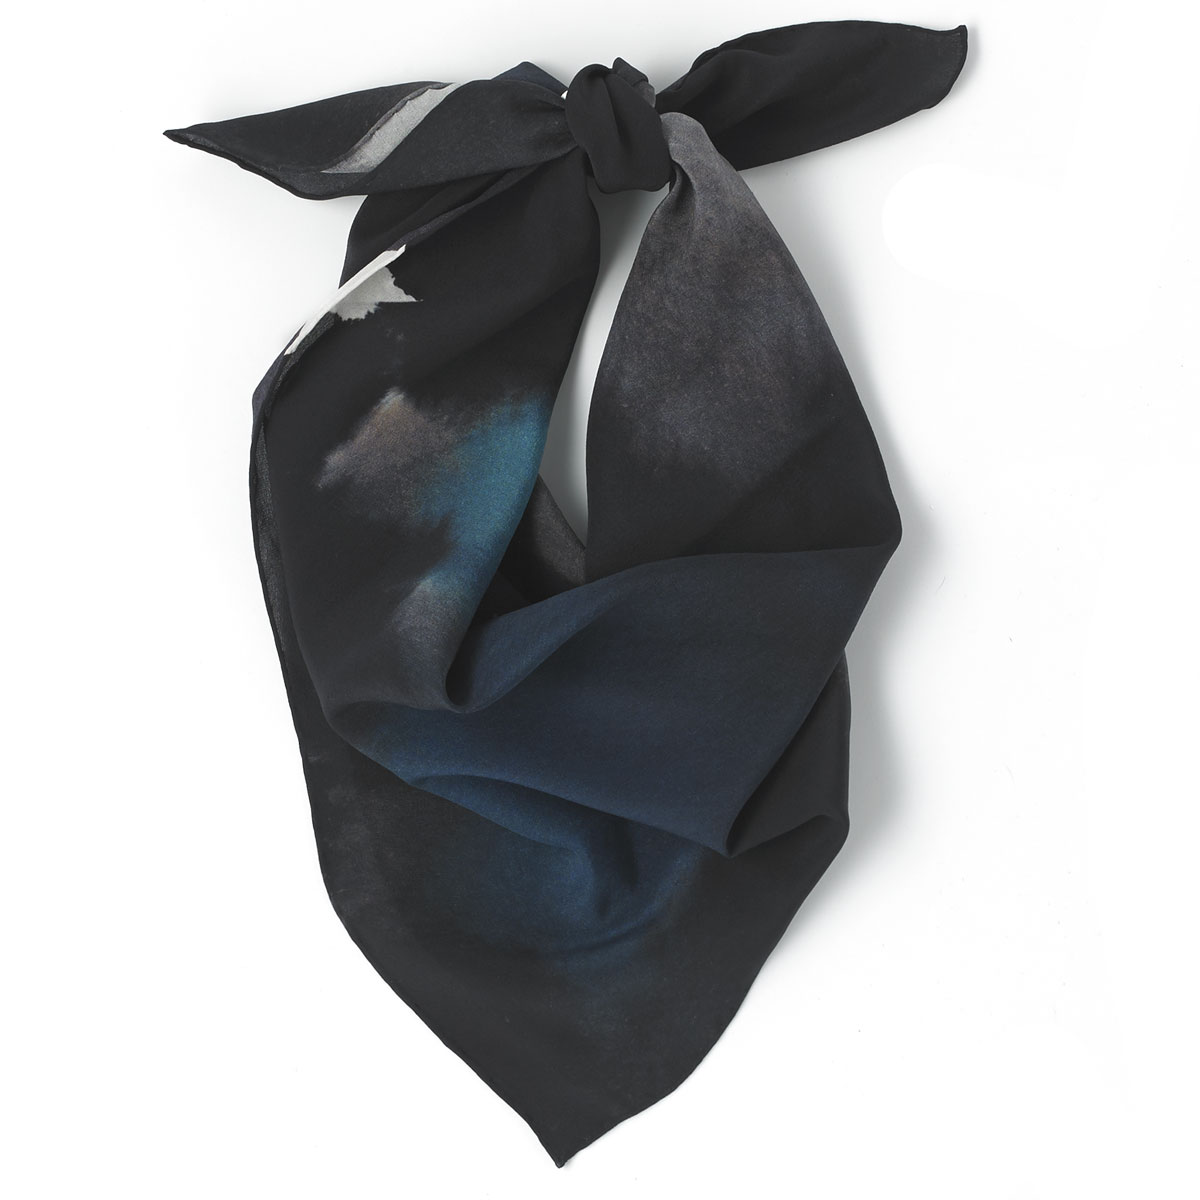 HIP HOP STAR Silk digital printed scarf 90 x90 cm.